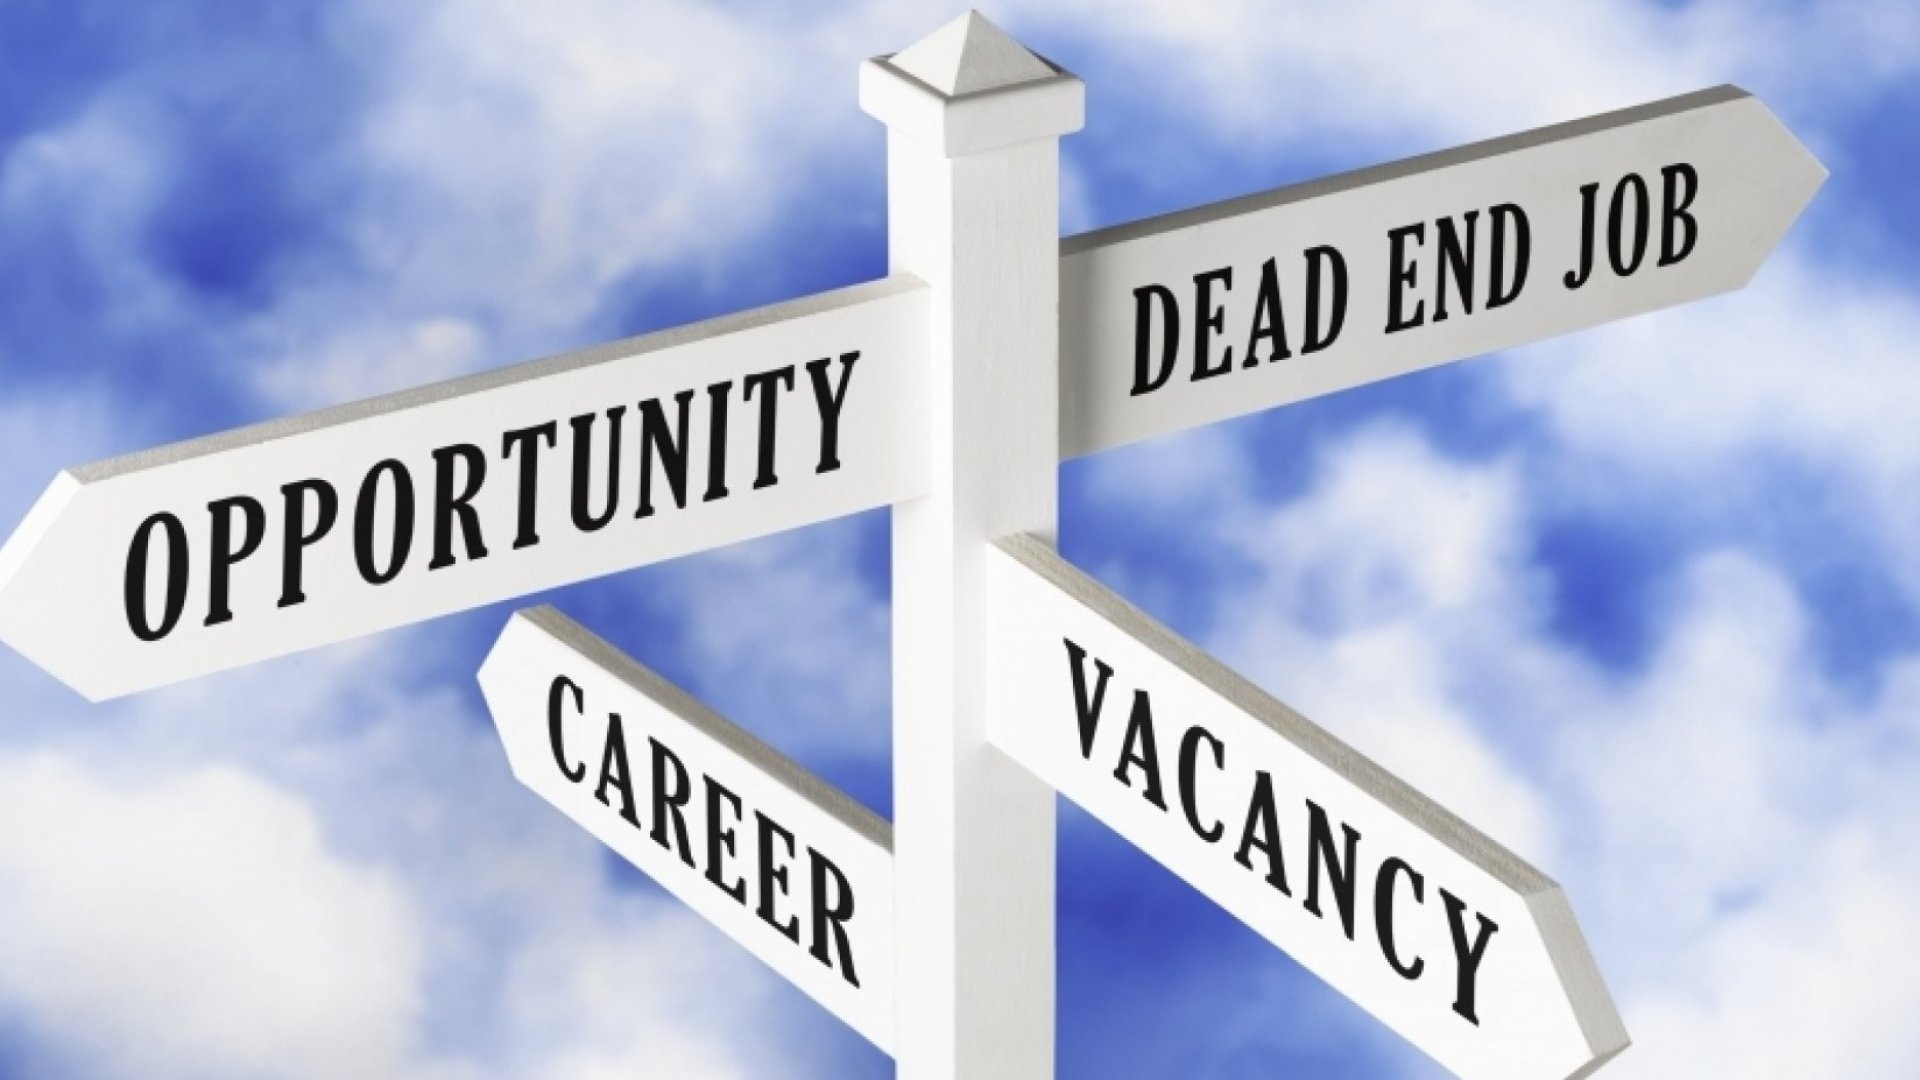 7 Signs You're in a Dead End Job